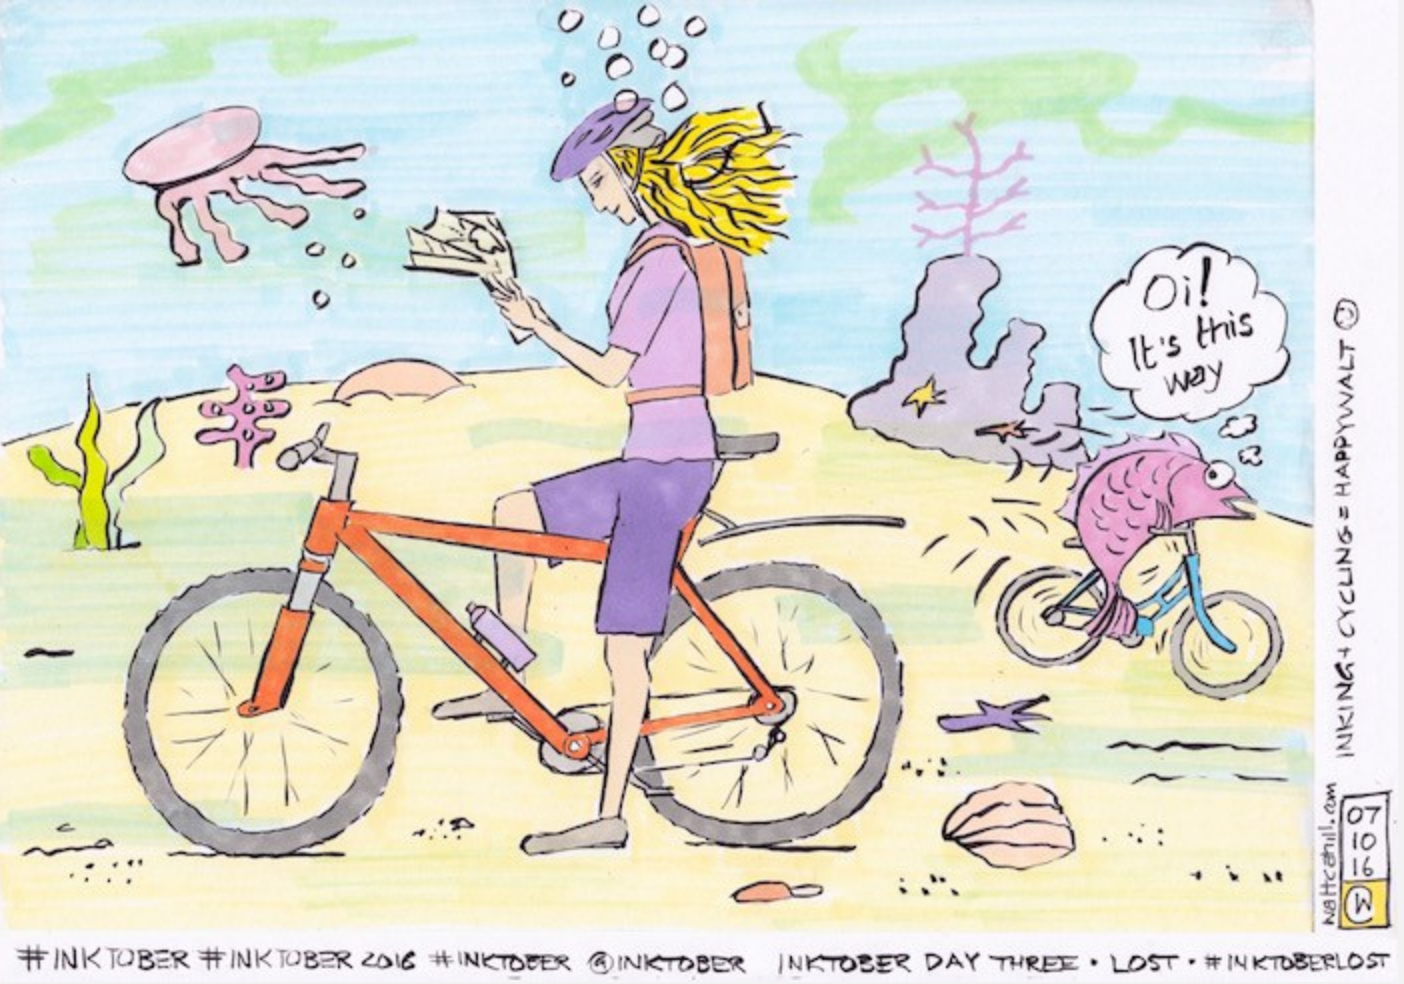 Pushbike clipart momentum Com Project Archives Source: waltcahill